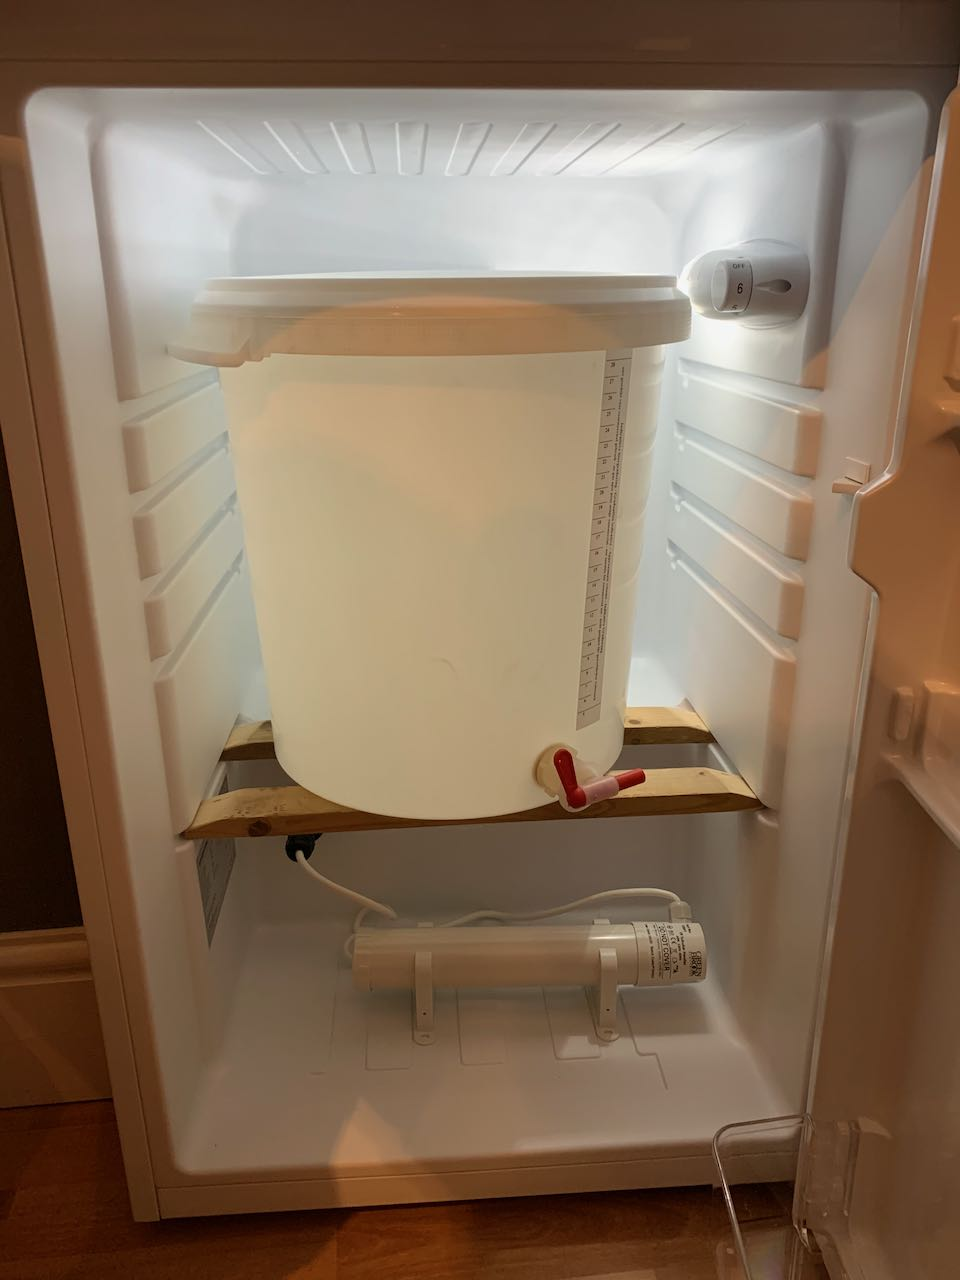 A modified fridge, showing the fermentation bucket fitting well